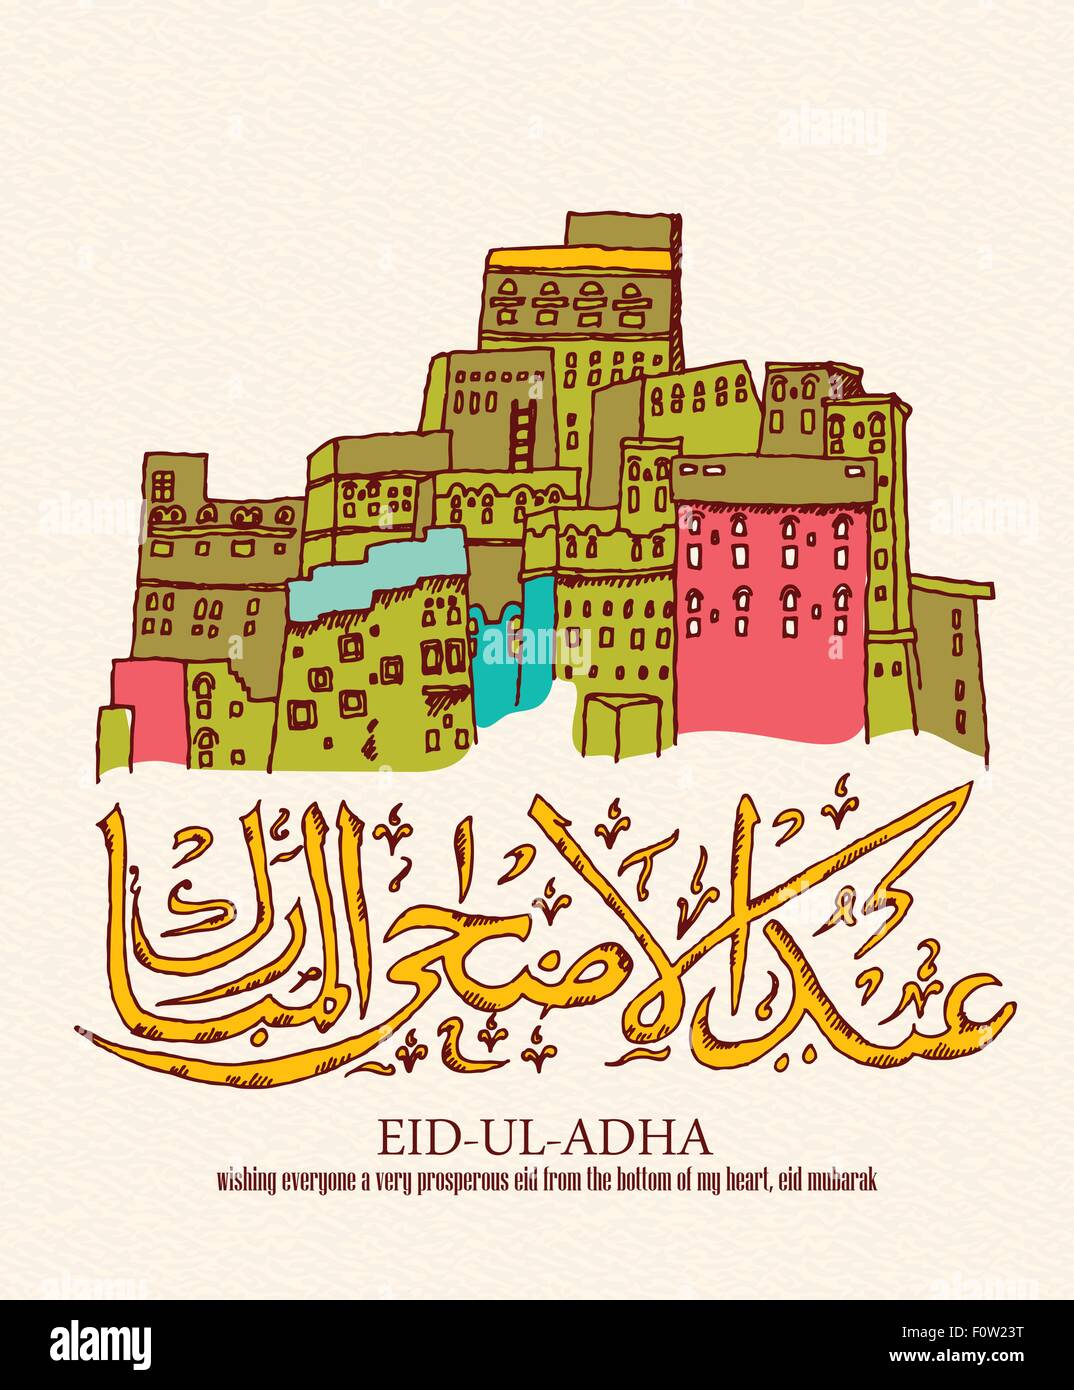 Arabic islamic calligraphy of text eid ul adha and old city in arabic islamic calligraphy of text eid ul adha and old city in retro style for muslim community festival celebrations kristyandbryce Image collections